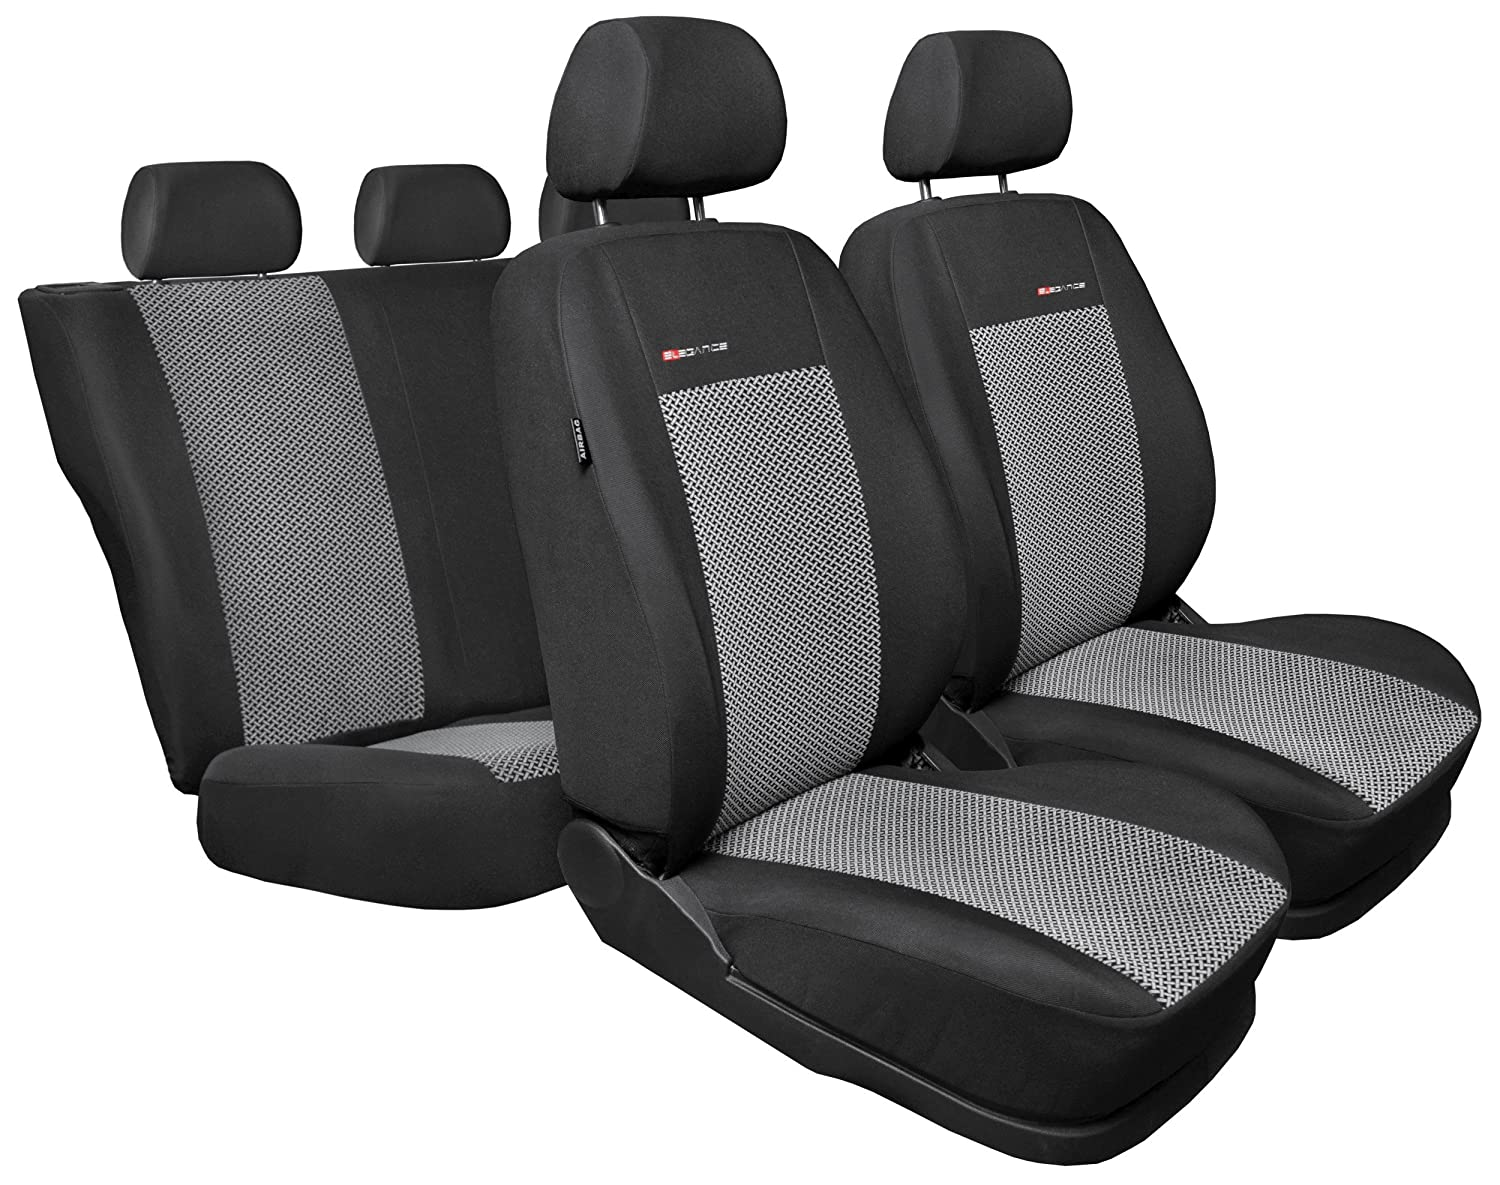 07- SKODA FABIA ELEGANCE ALPHA STYLE FRONT SEAT COVERS IN BLACK /& GREY 1+1